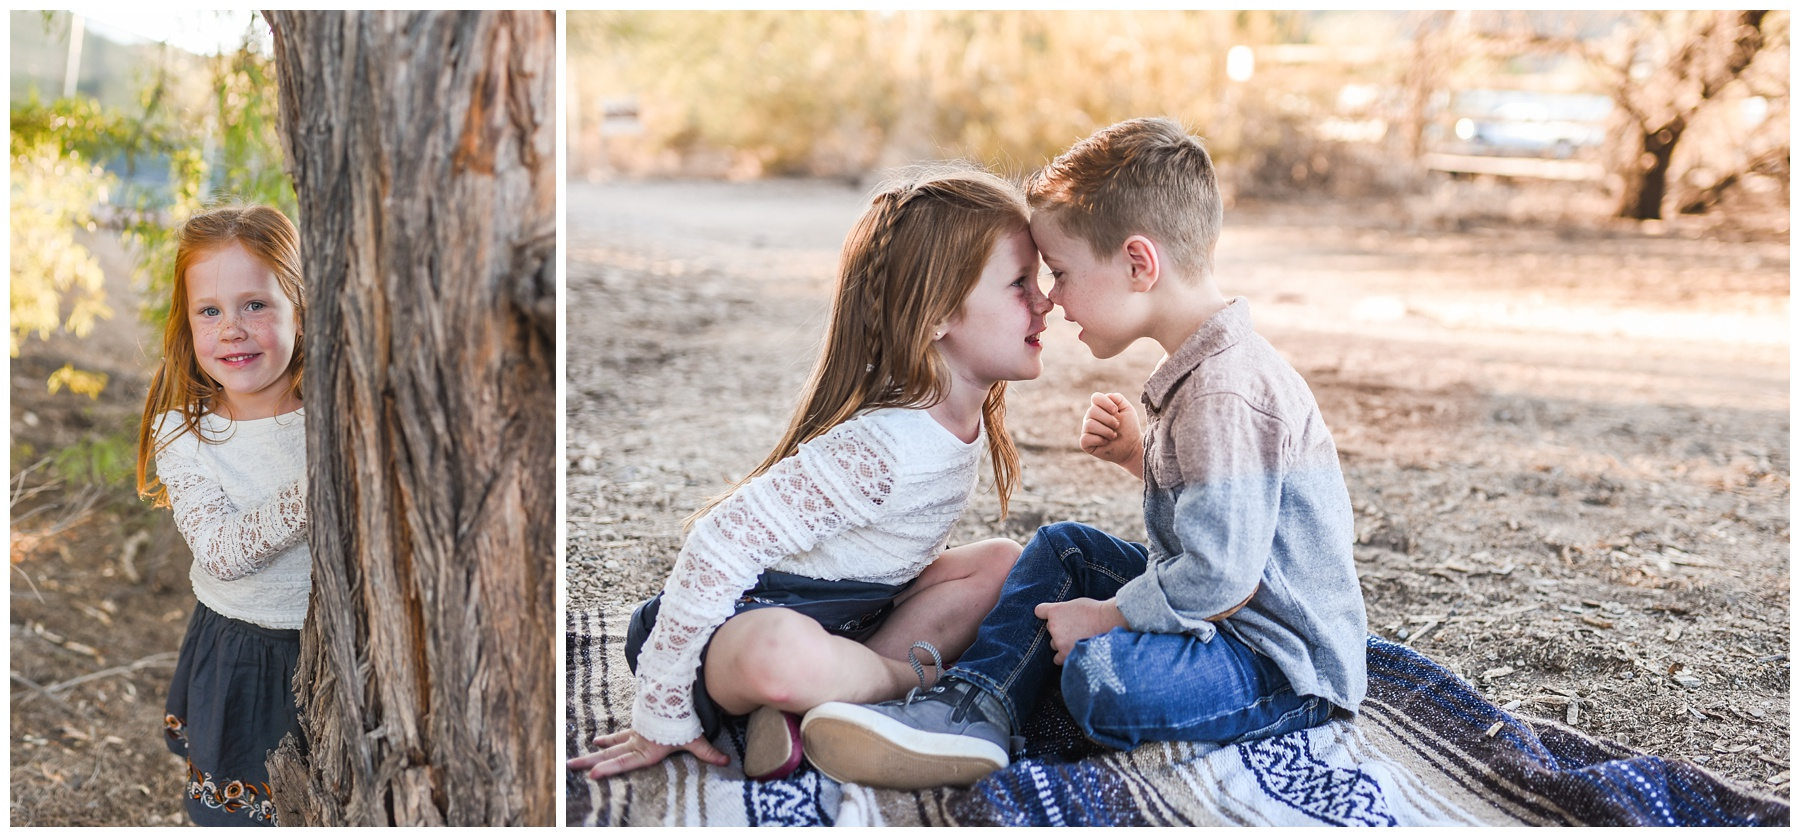 Twins touching noses | Phoenix Lifestyle Family Portraits